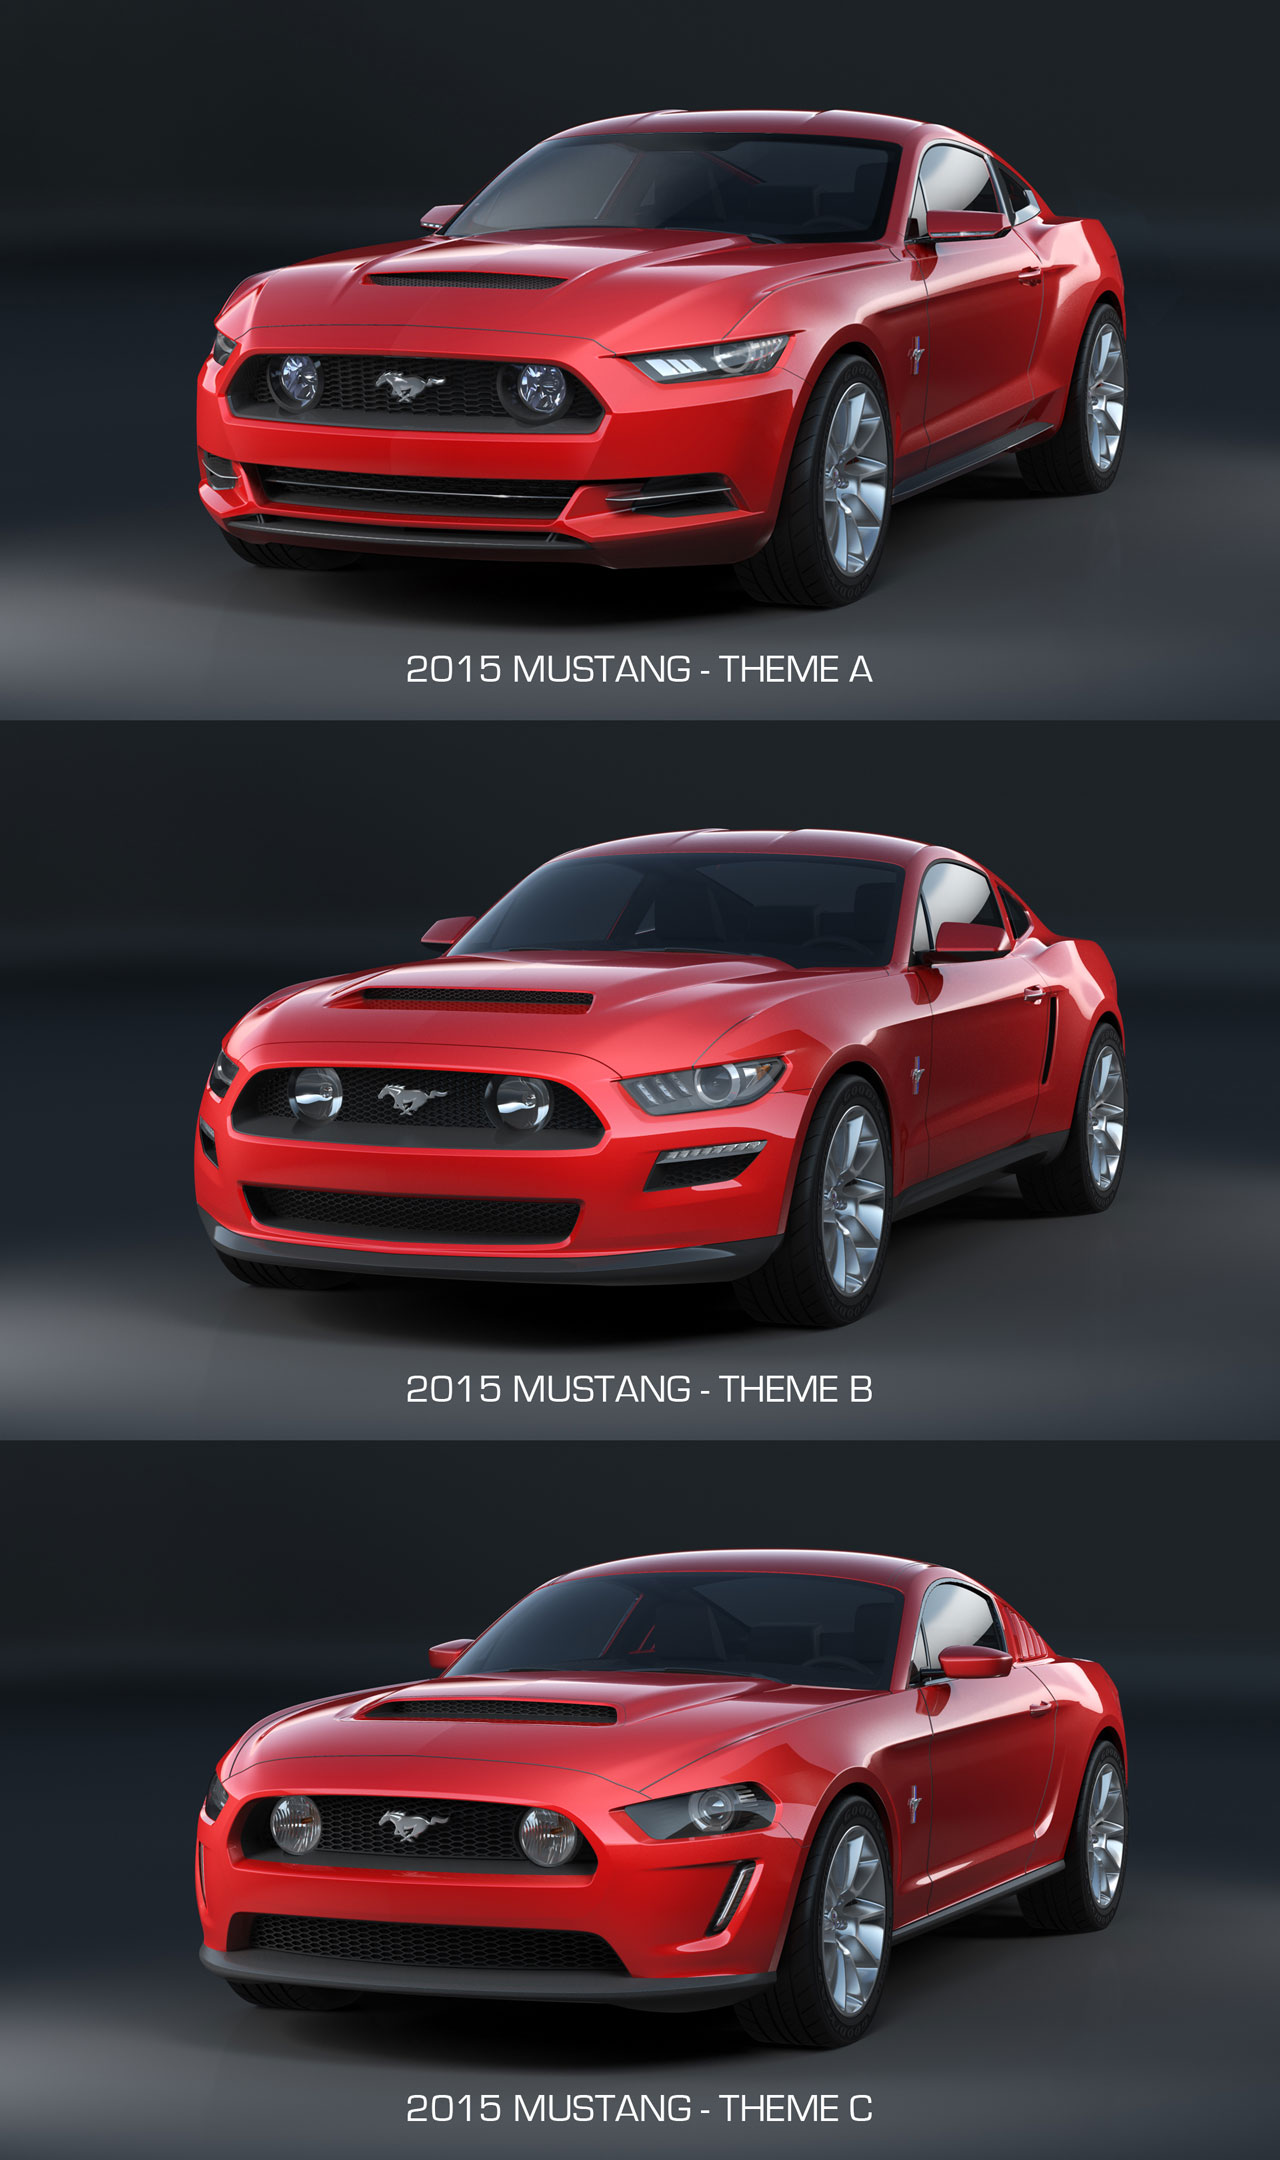 2010 Ford Mustang Comparison Mustang Gt Vs Mustang Shelby